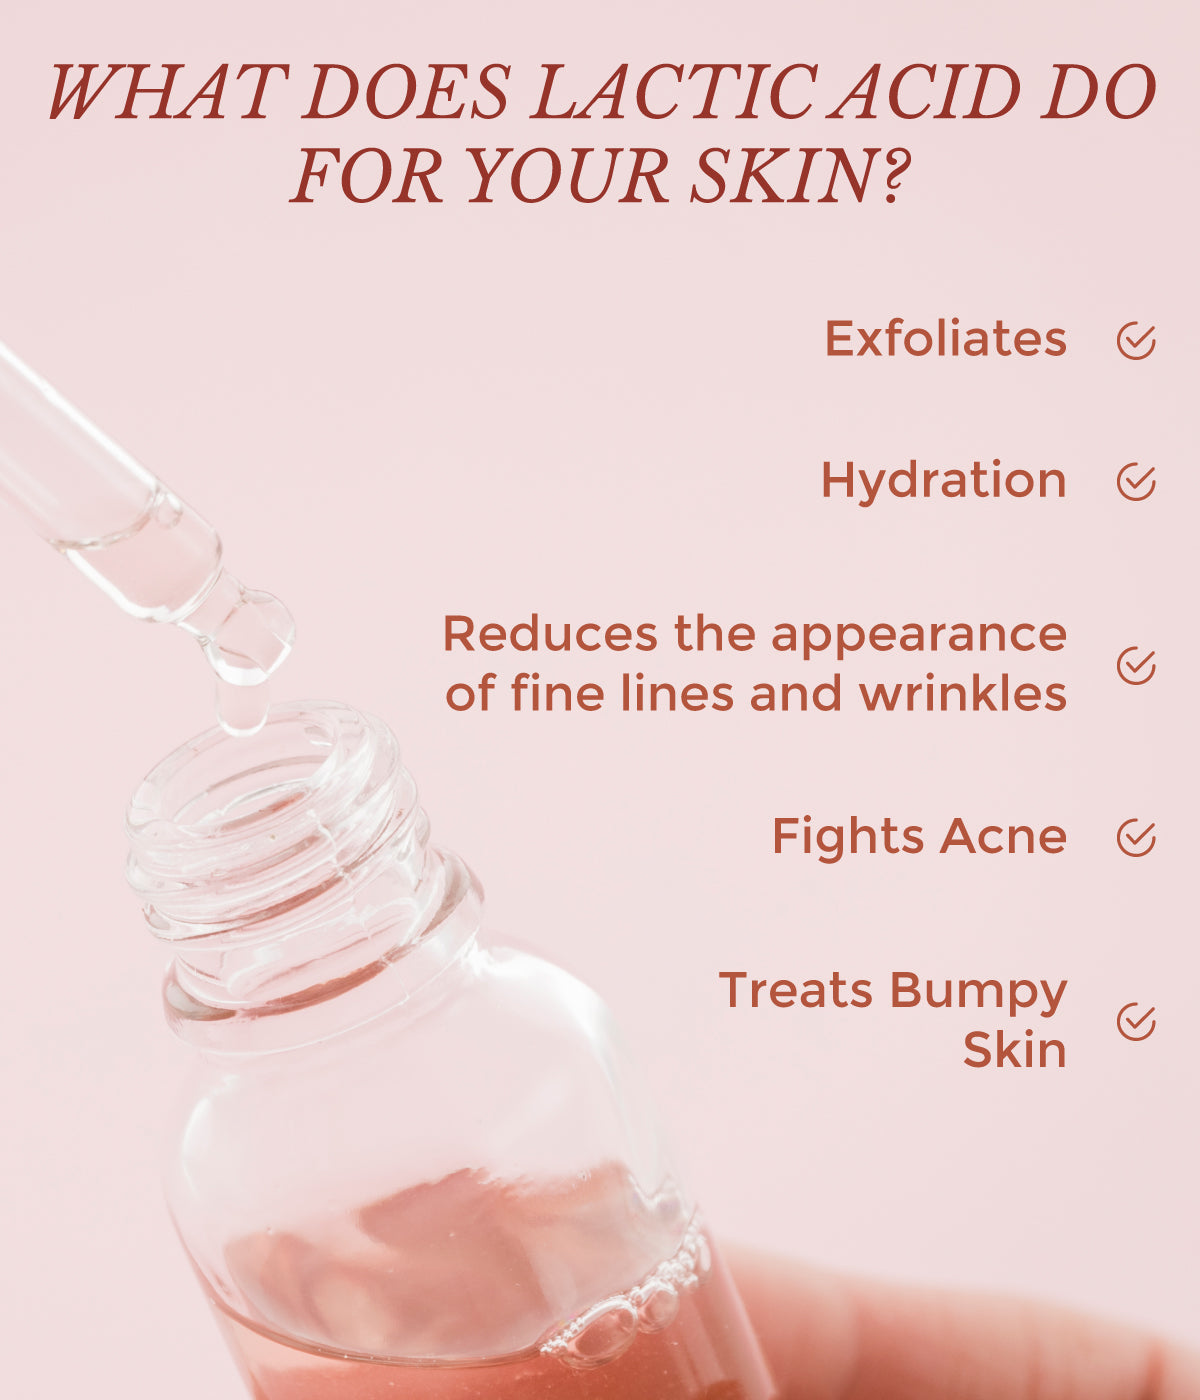 This is a image of what Lactic Acid does to your skin on www.sublimelife.in